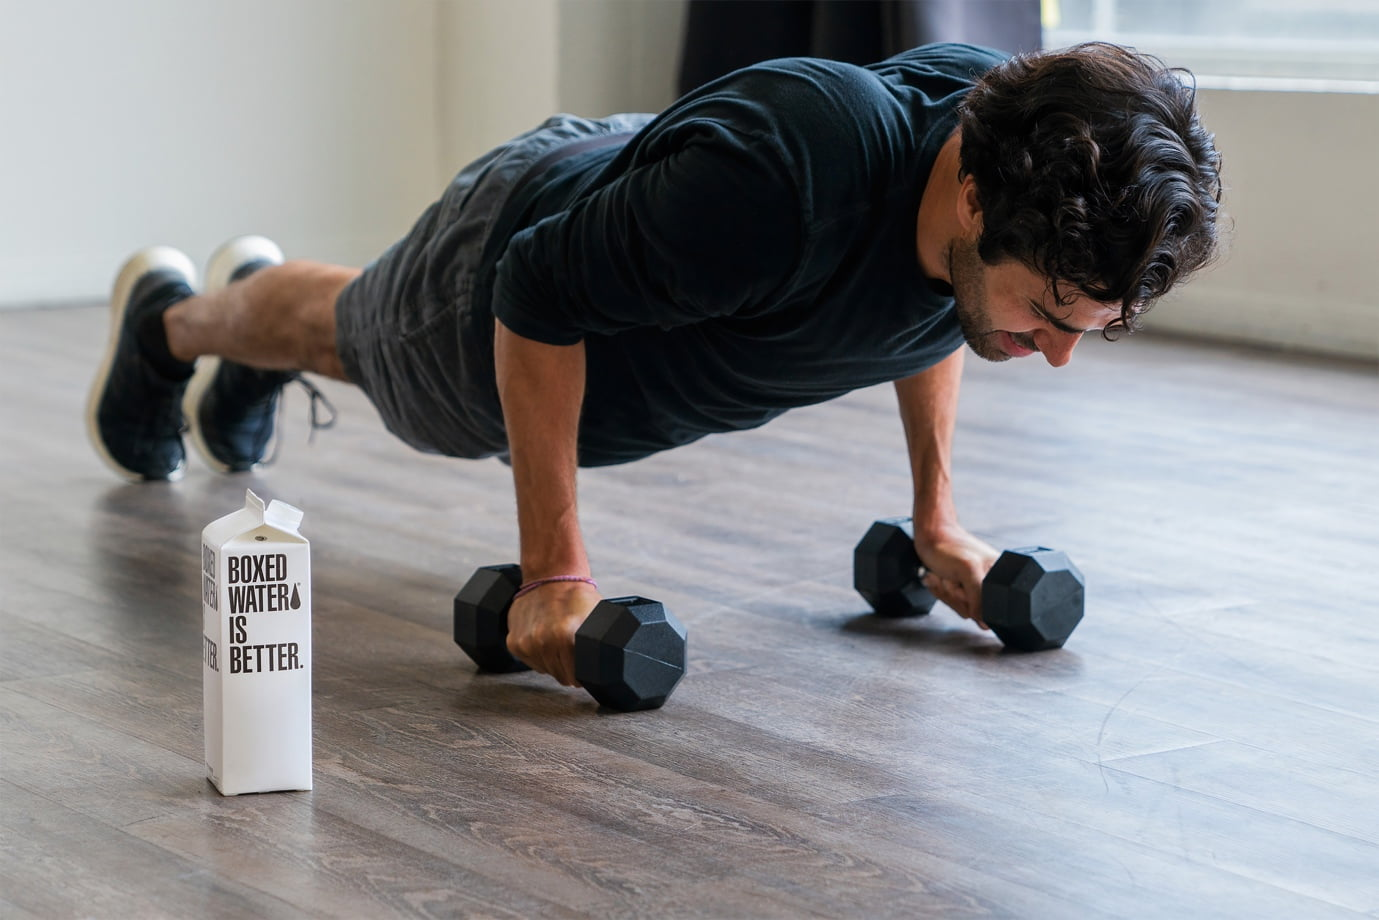 A person doing push ups Description automatically generated with low confidence